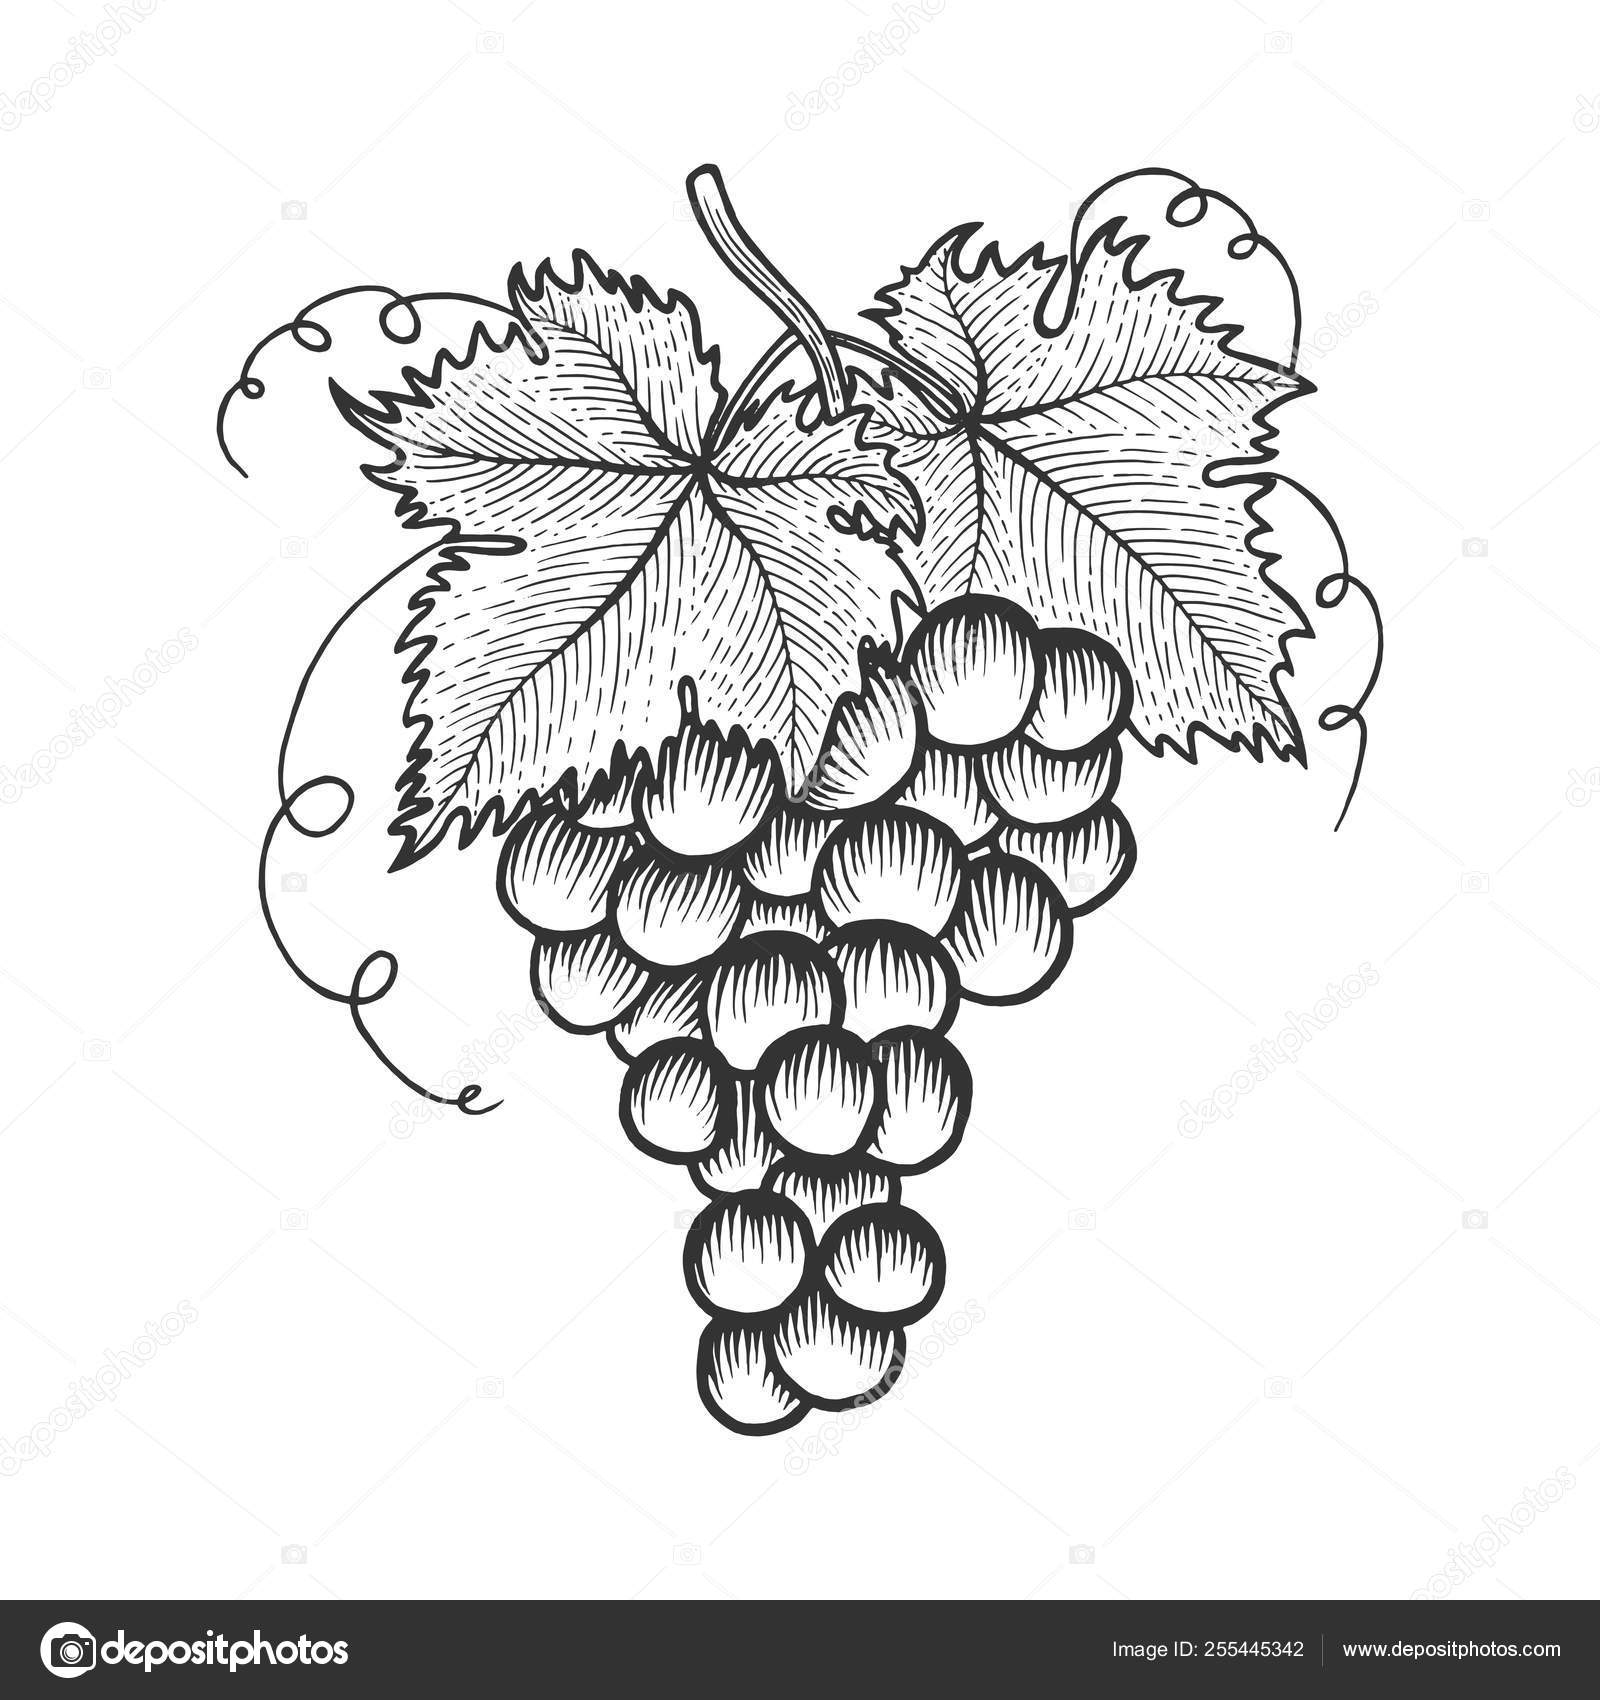 Bunch Of Grapes With Leaves Sketch Engraving Vector Illustration